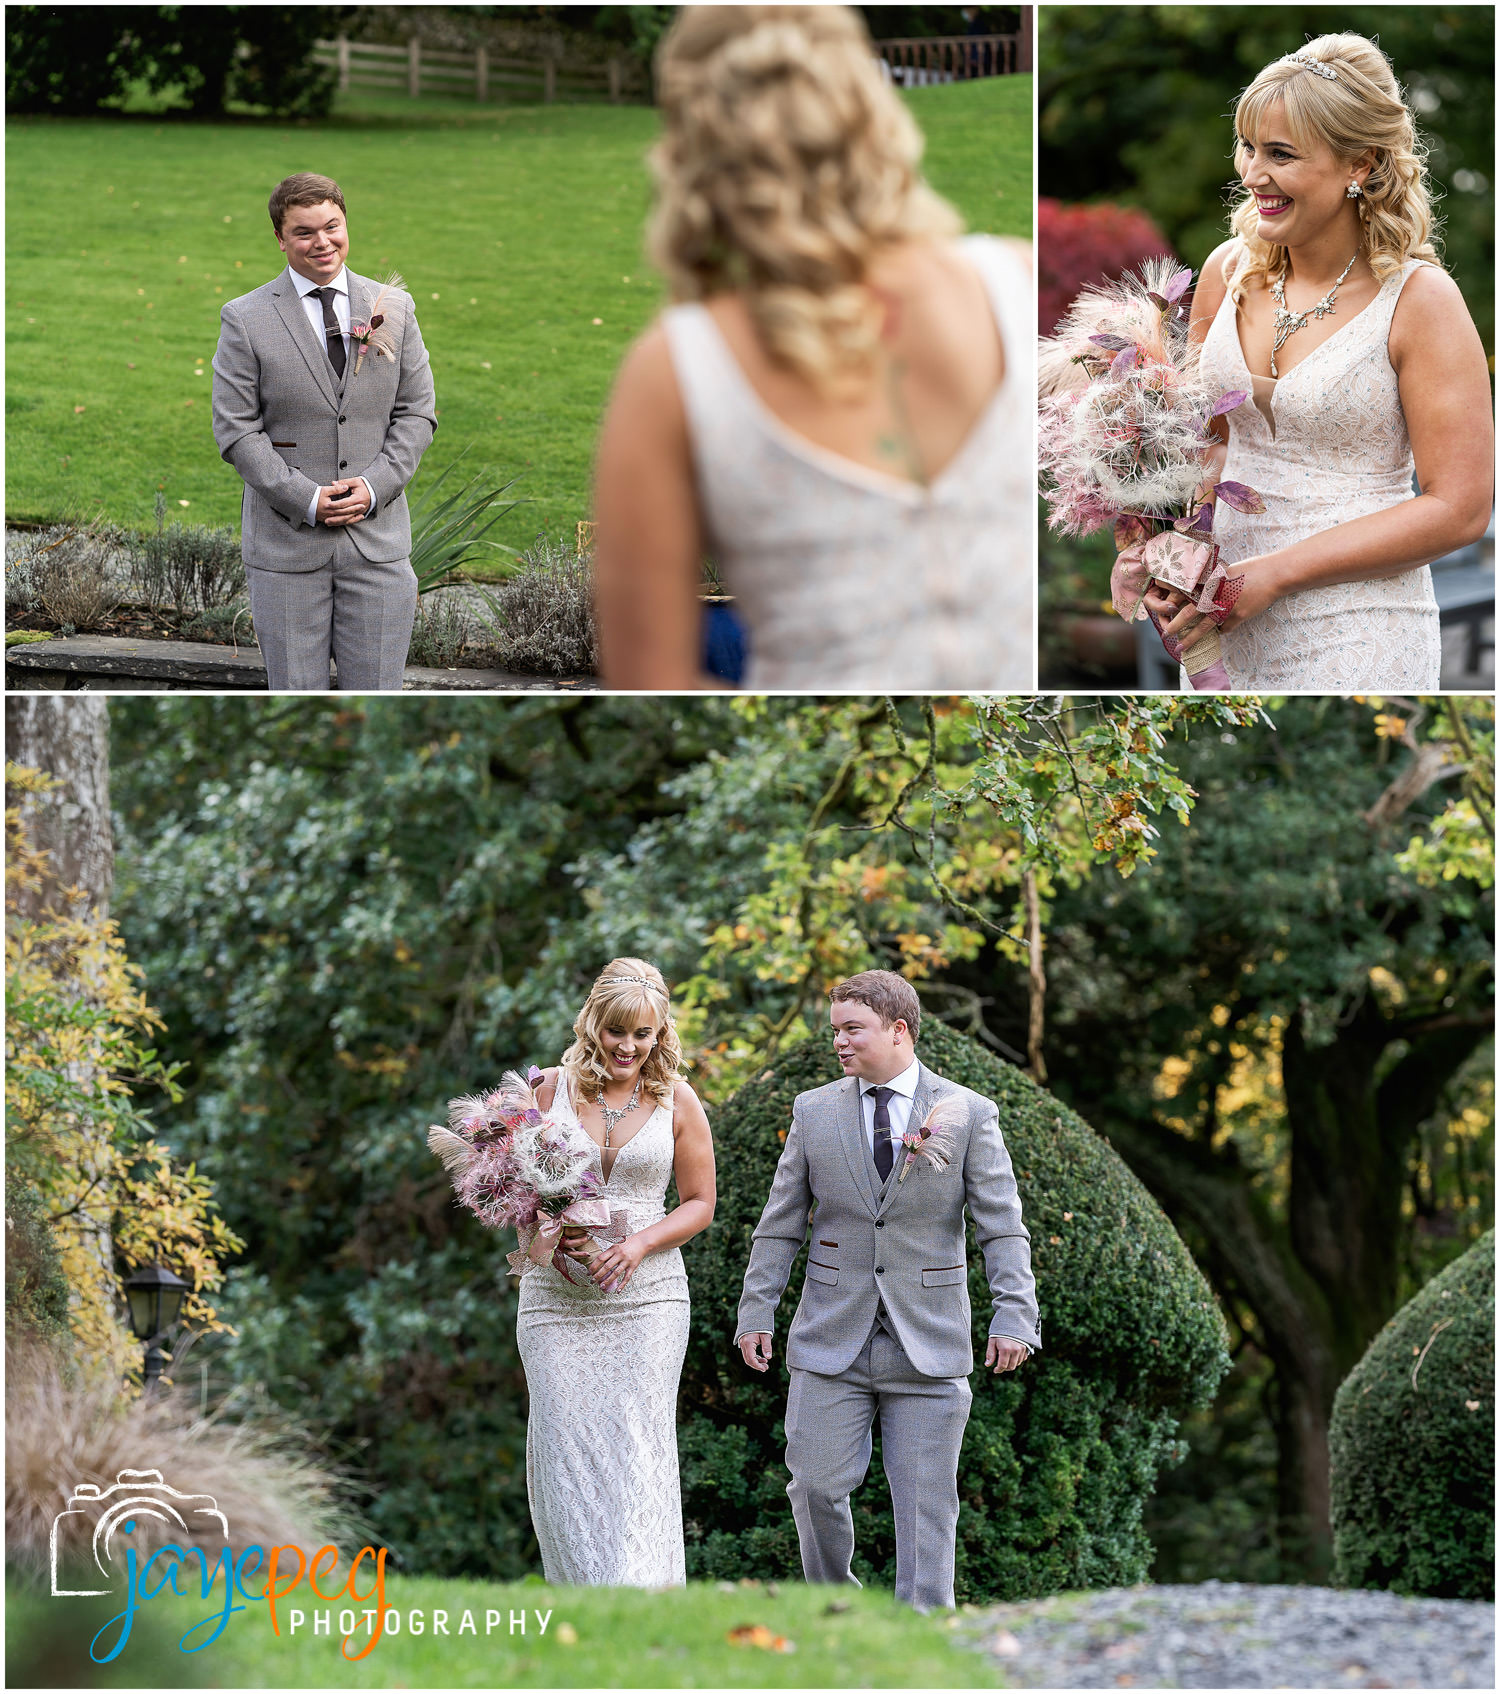 a bride and groom meet and then walk to their wedding ceremony